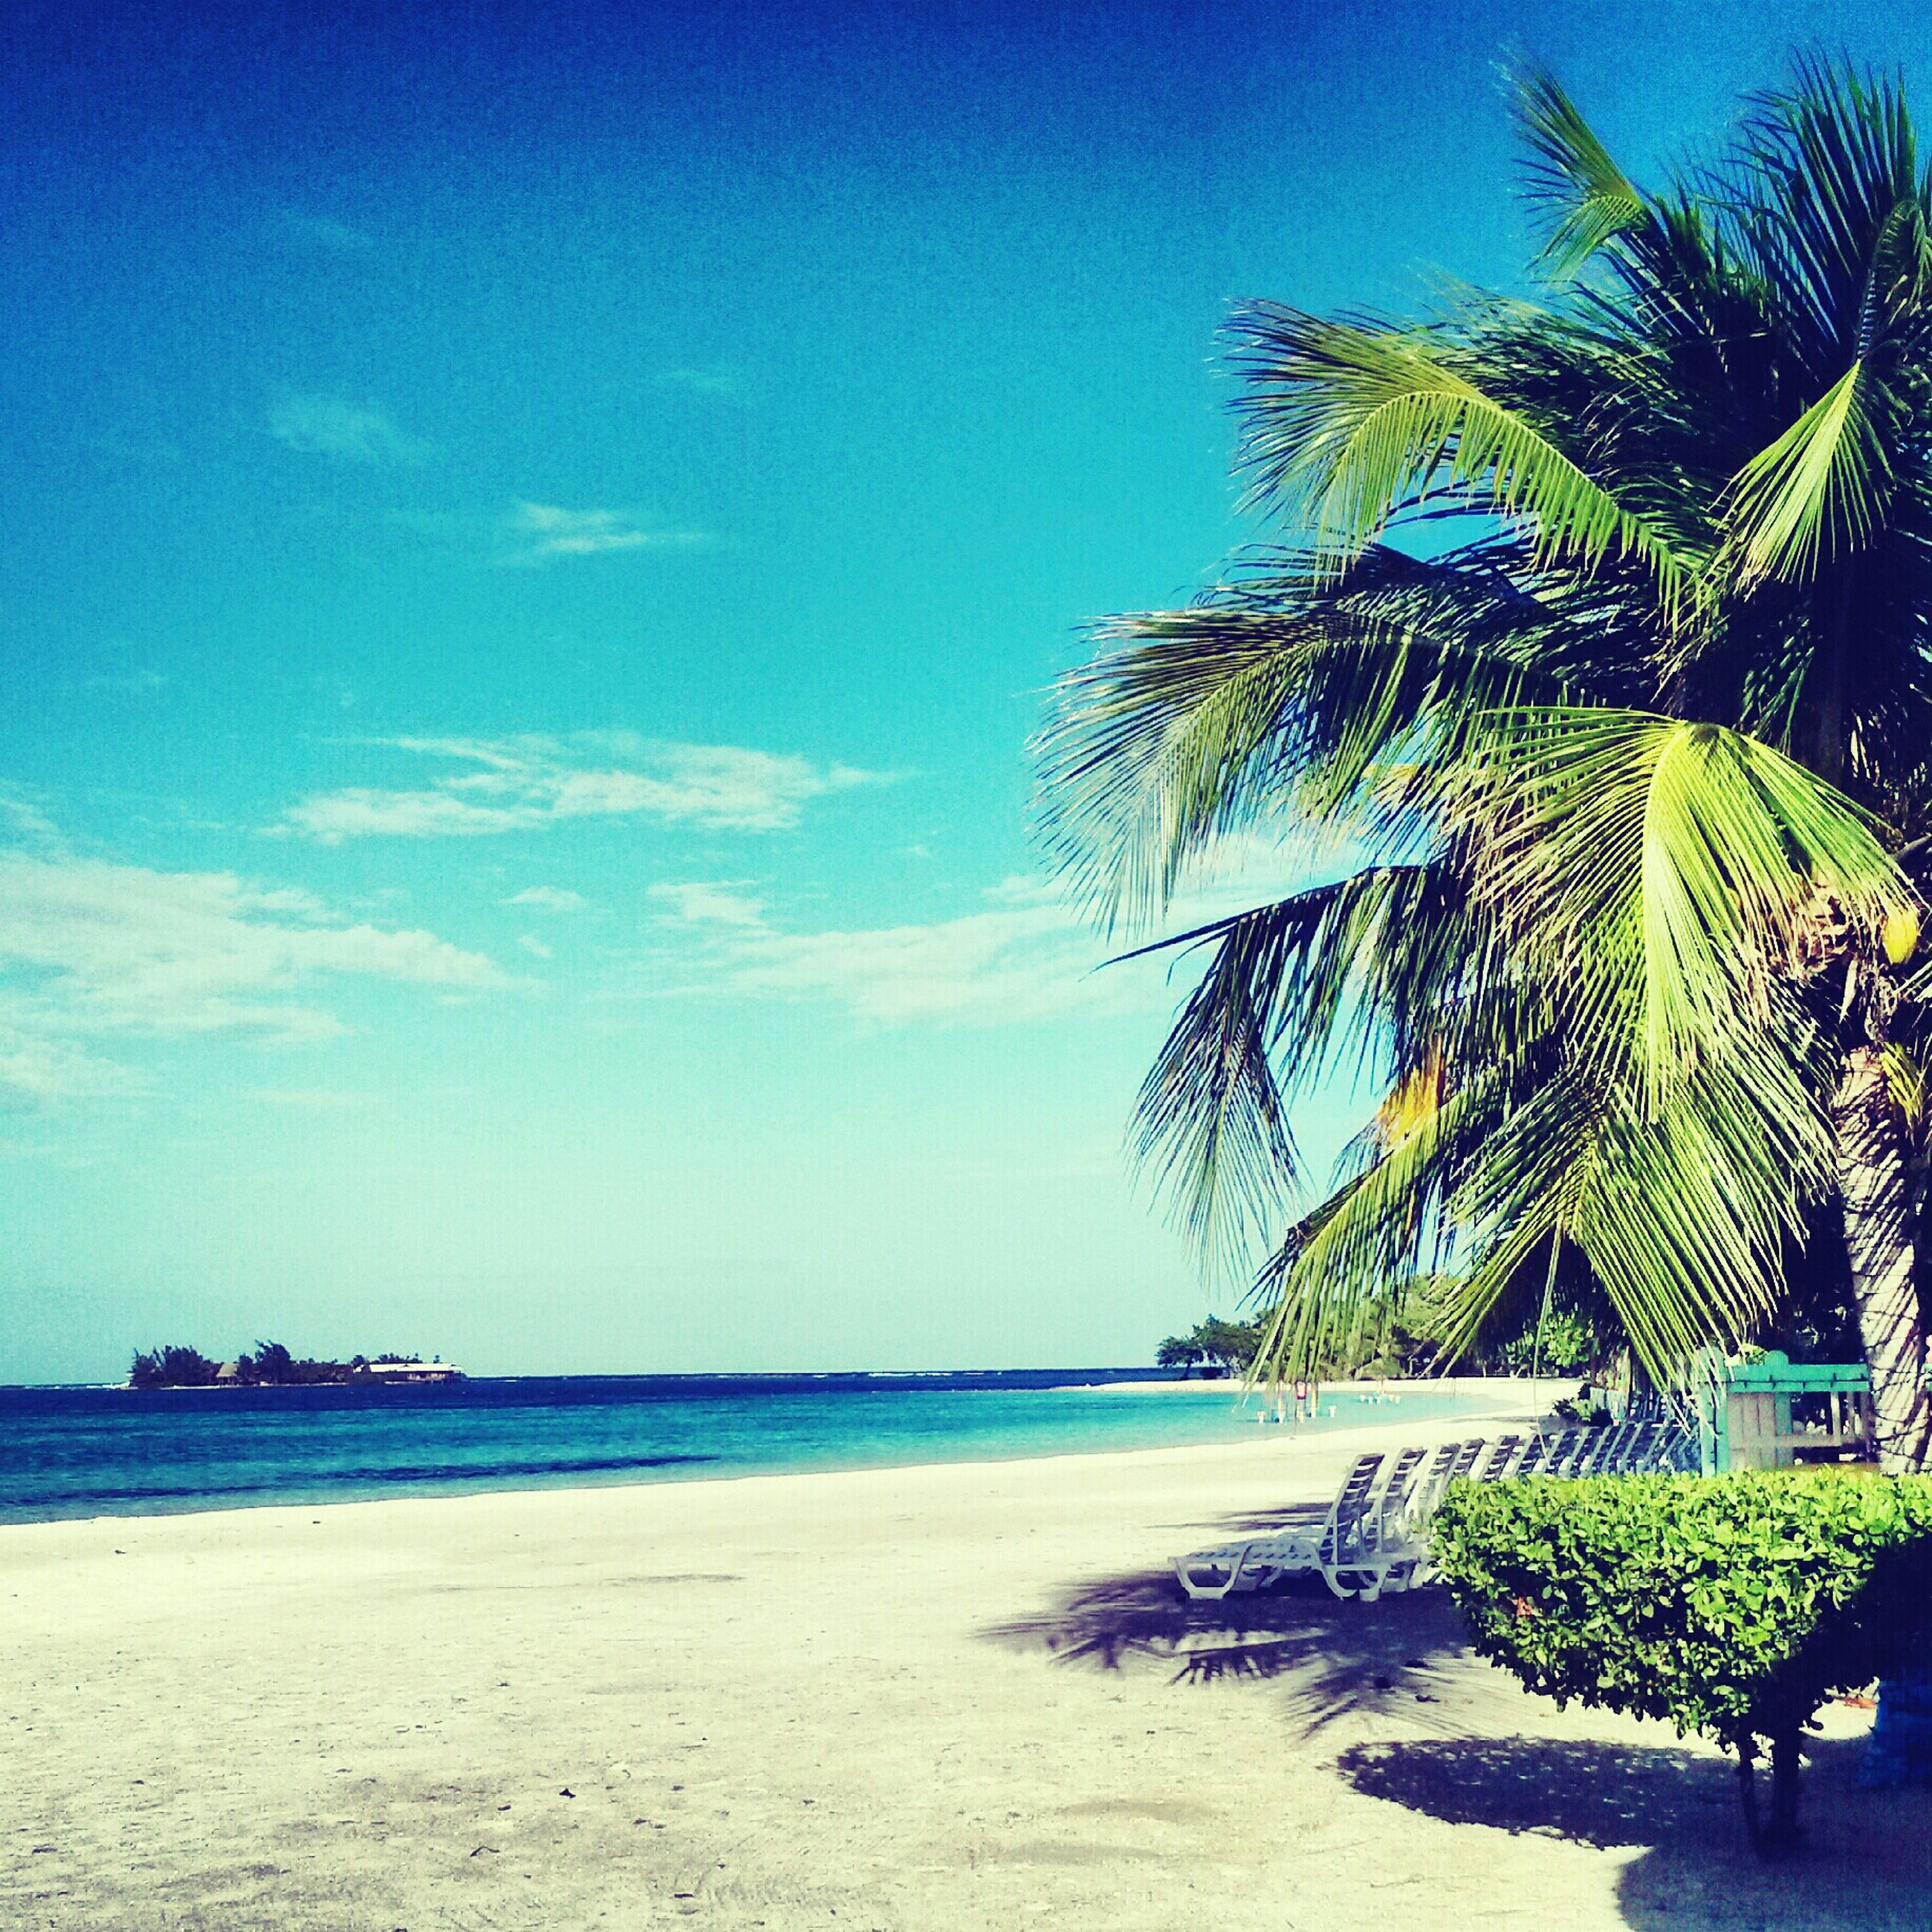 sea, palm tree, beach, water, tree, blue, shore, tranquility, sand, tranquil scene, horizon over water, sky, beauty in nature, scenics, nature, growth, tropical climate, coastline, incidental people, idyllic